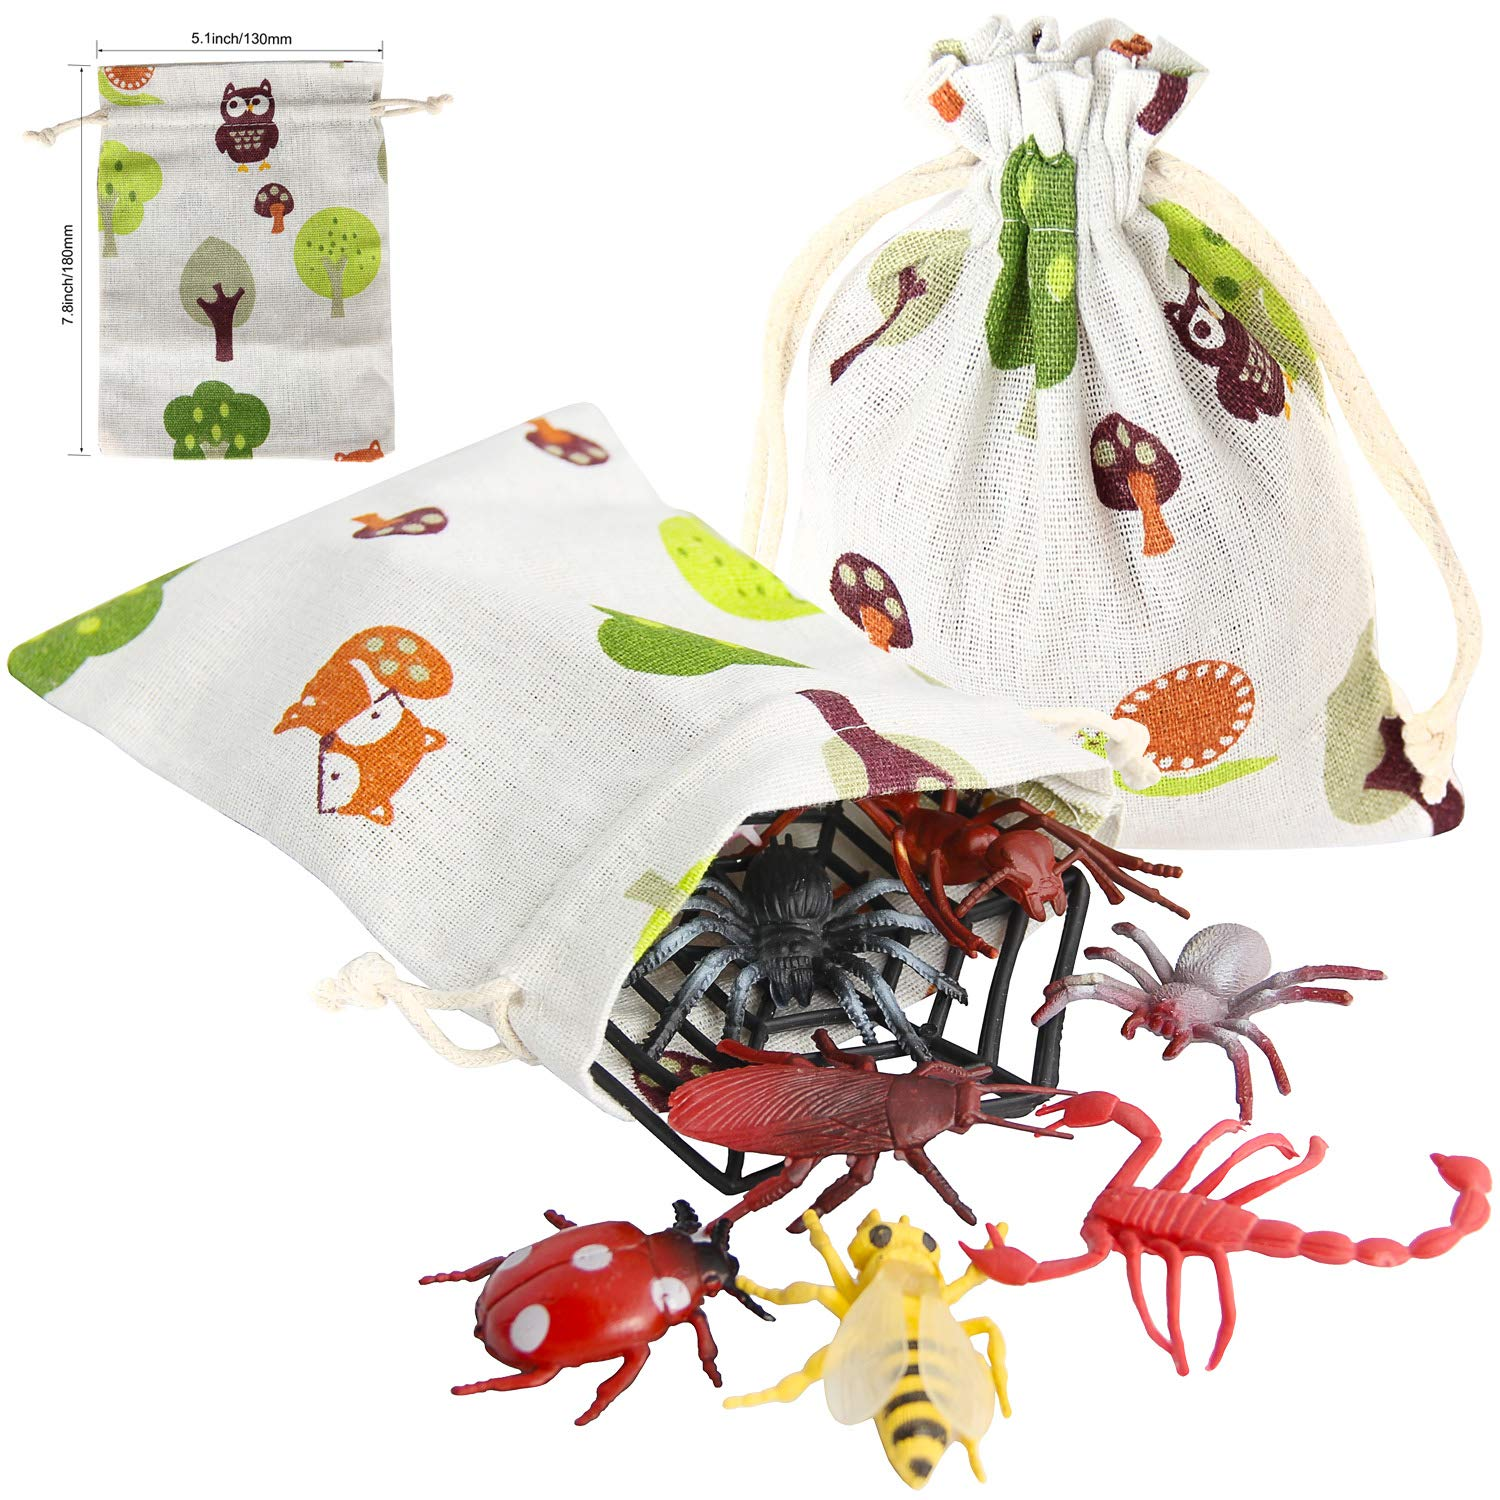 Cricket Cockroach 17 Pack Pinowu Bugs Toy Figures Playset for Party Favors Large Realistic Bugs Insects Include Fake Spider Centipede Mantis Frog with Burlap Bag